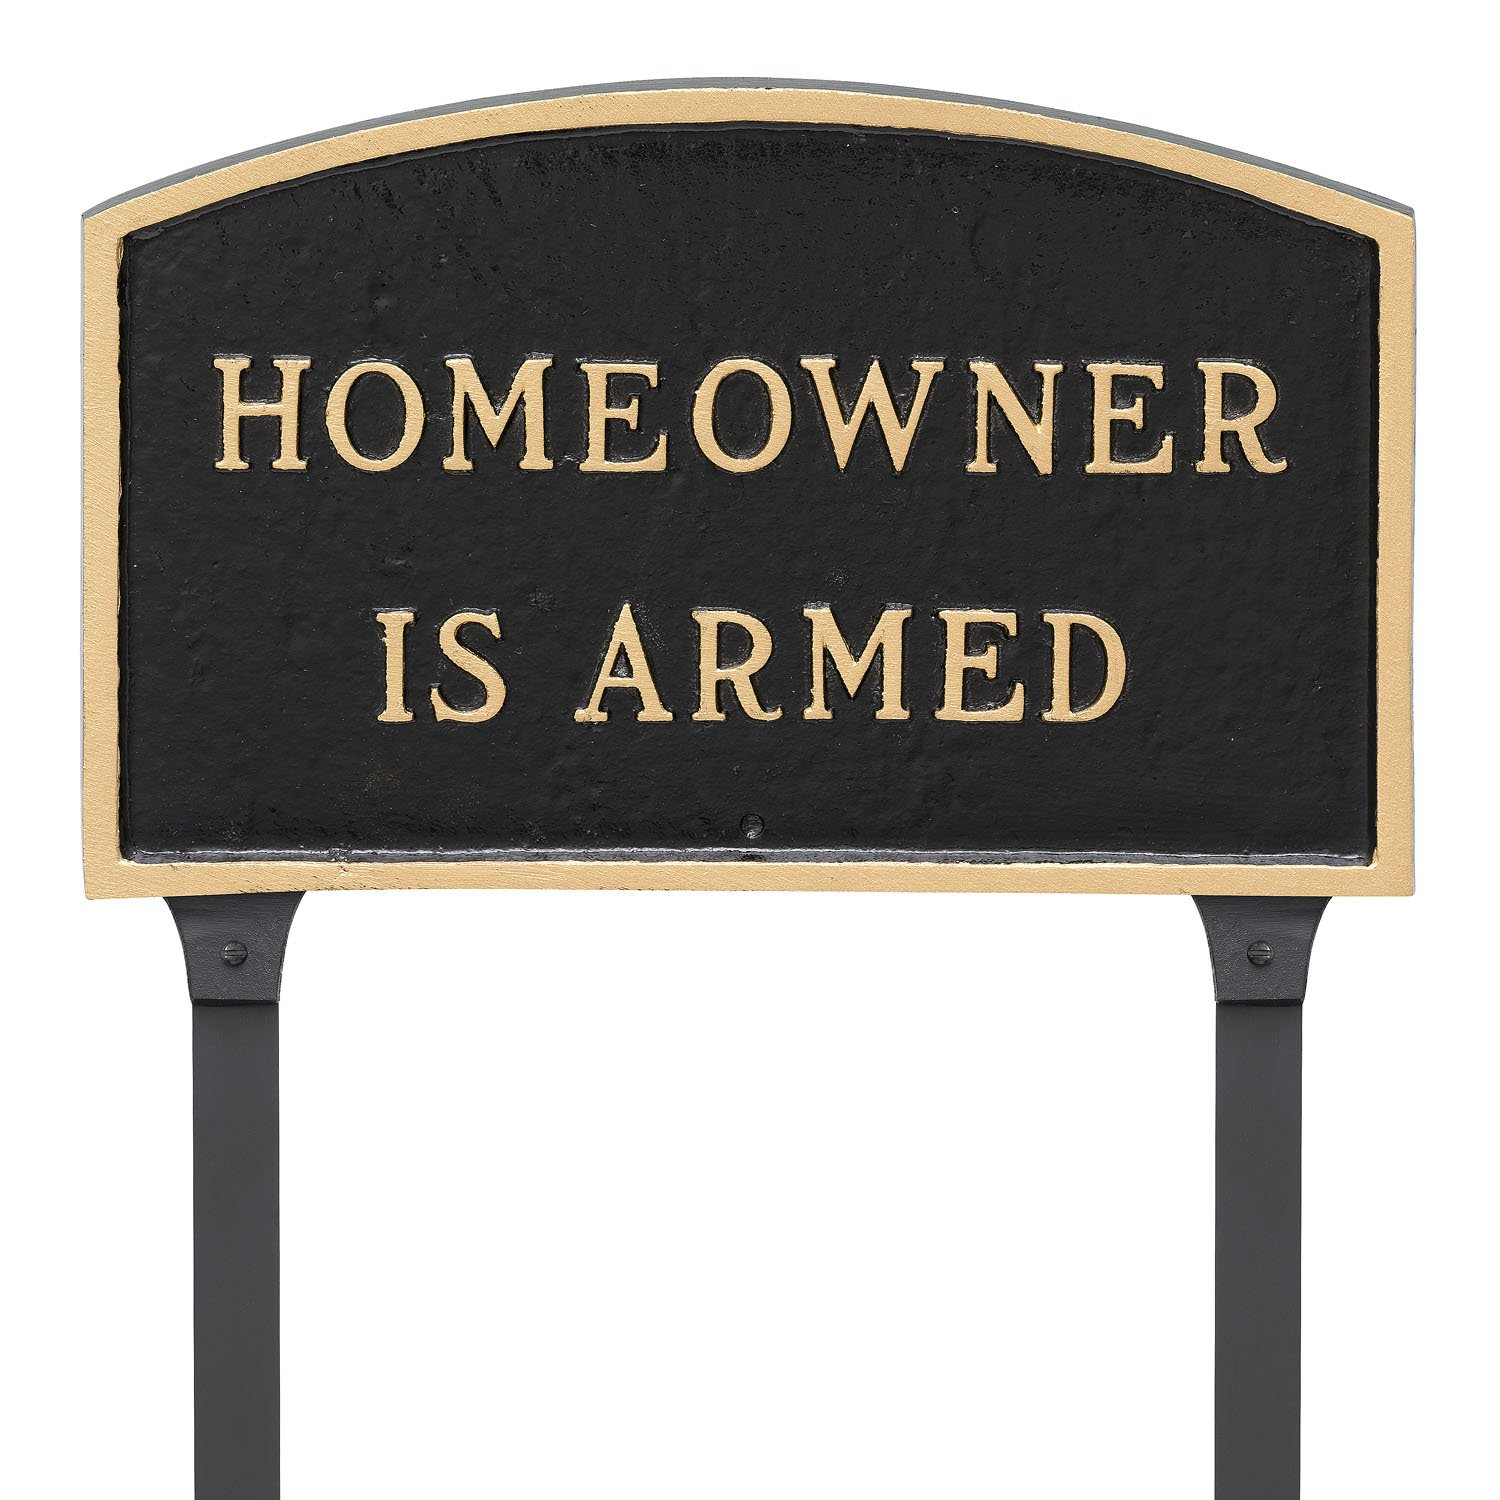 Montague Metal Products 13'' x 21'' Arch Homeowner is Armed Statement Plaque with 23'' Lawn Stake, Black/Gold